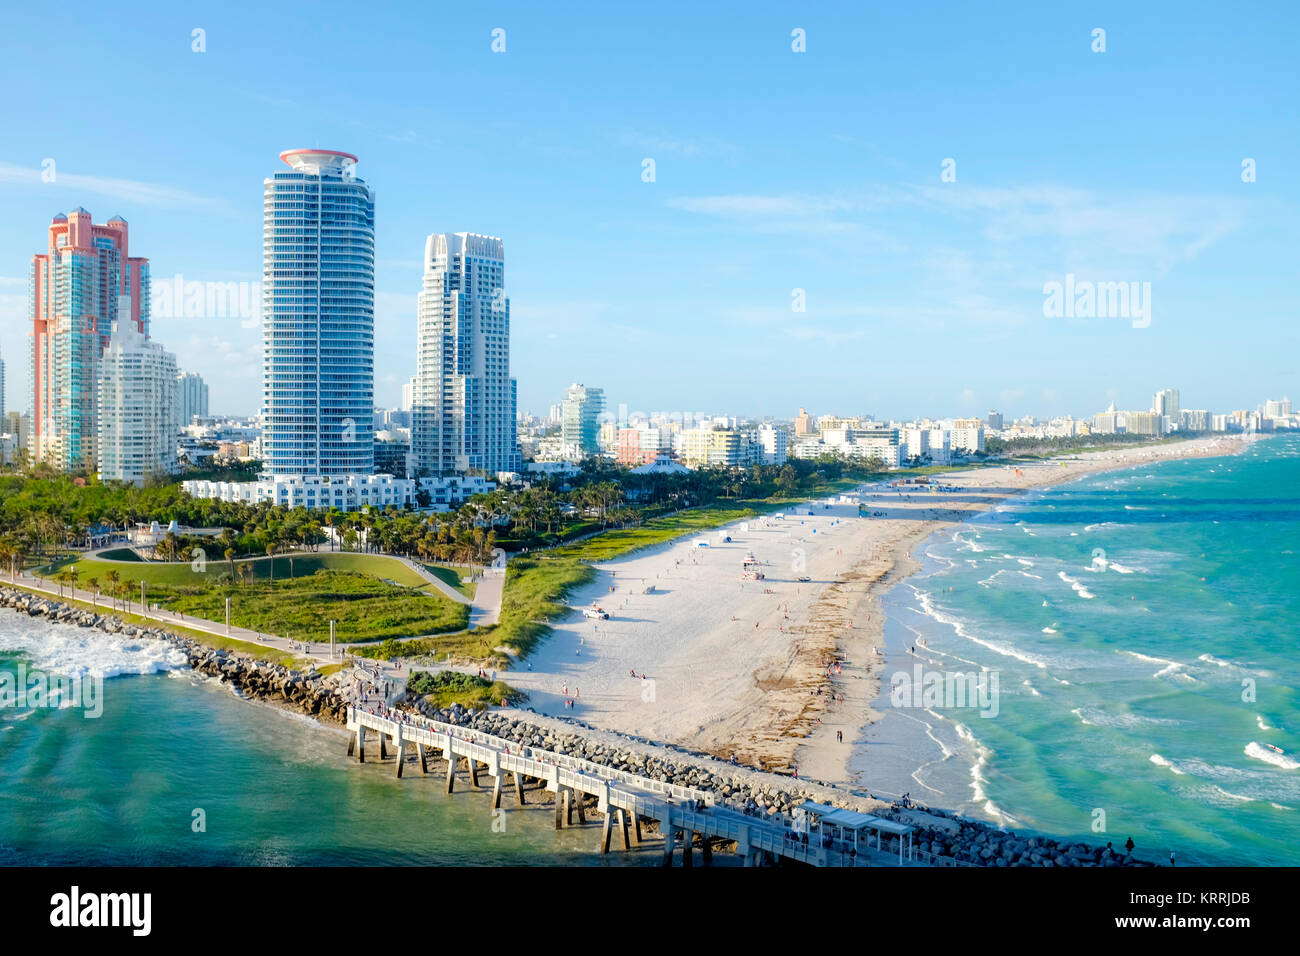 Aerial view of South Miami Beach with luxury apartments and buildings. - Stock Image